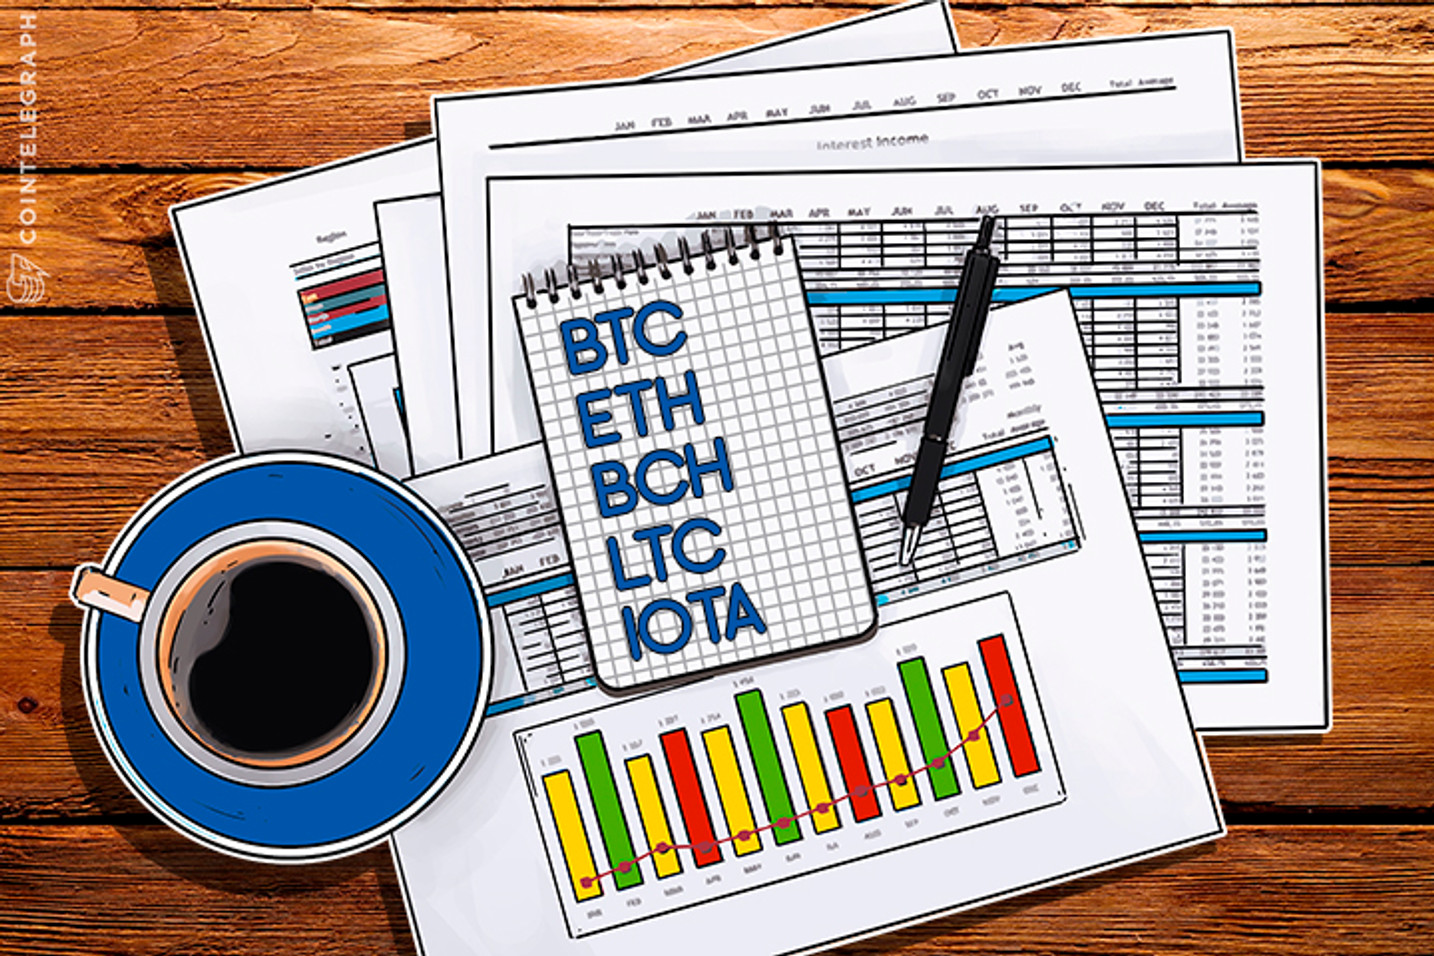 Price Analysis, Dec. 12: Bitcoin, Ethereum, Bitcoin Cash, IOTA, Litecoin, Dash.